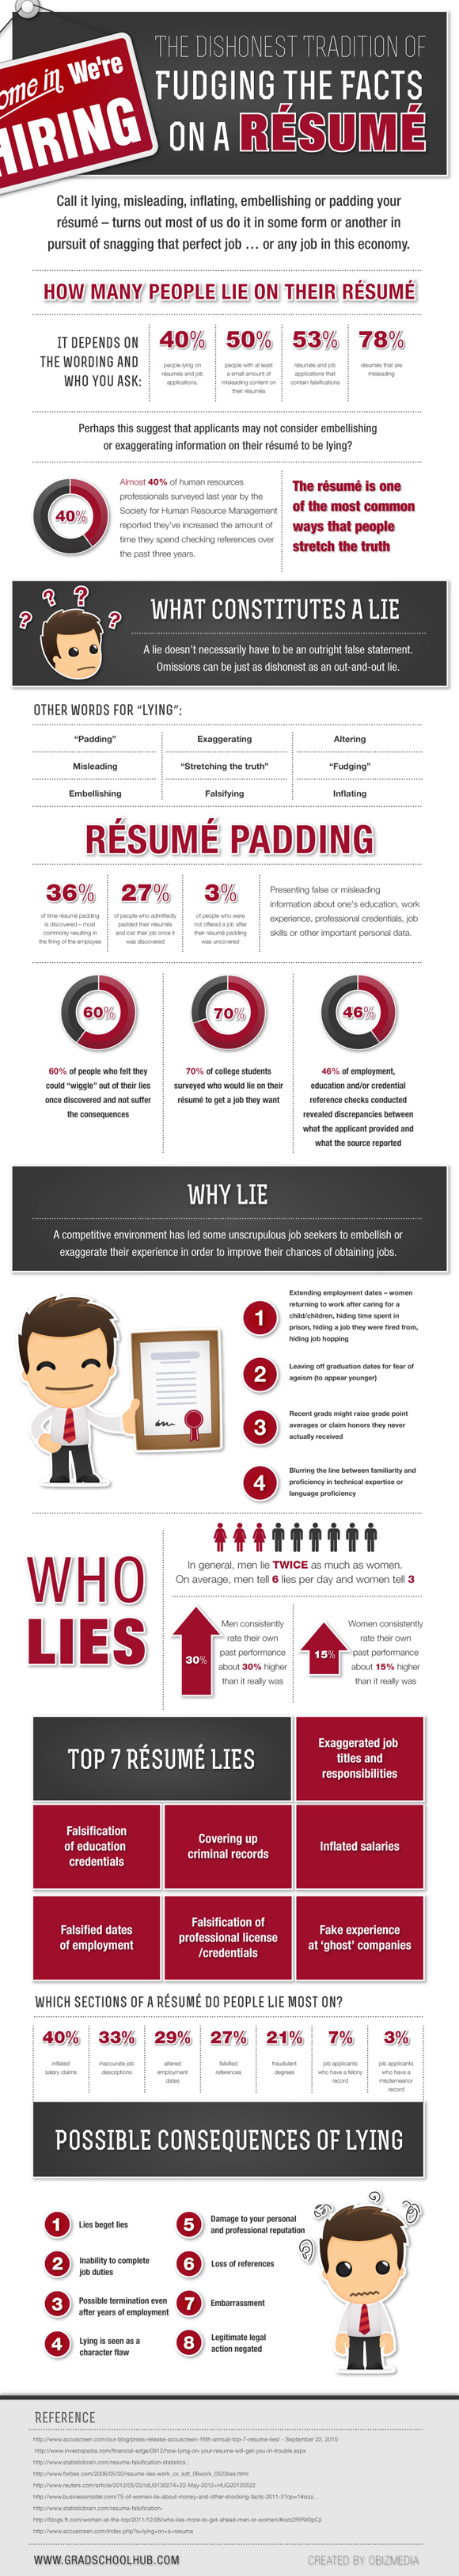 fudging facts on a resume infographic